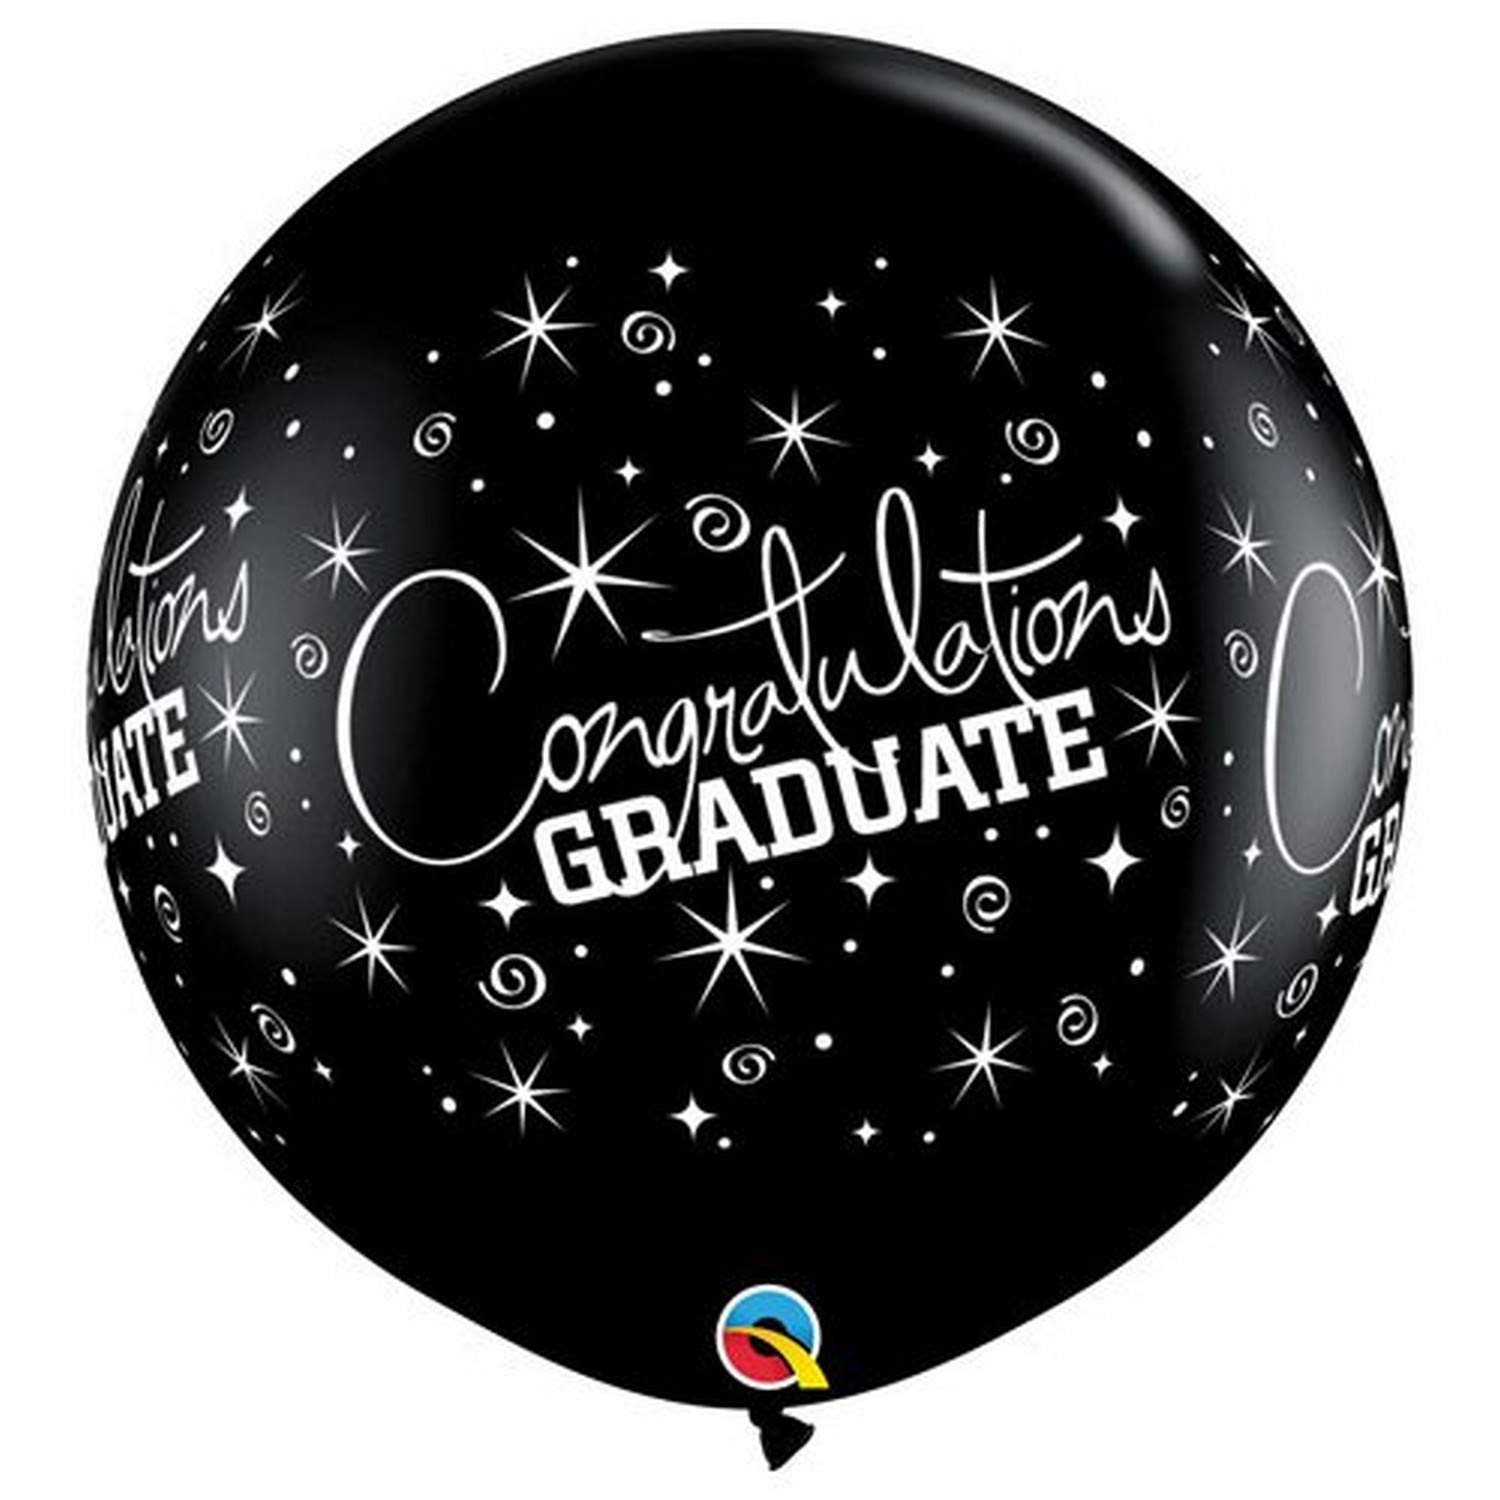 BALÃO LÁTEX CONGRATULATIONS GRADUATE WRAP 3 PÉS - PC 2UN - QUALATEX #29947